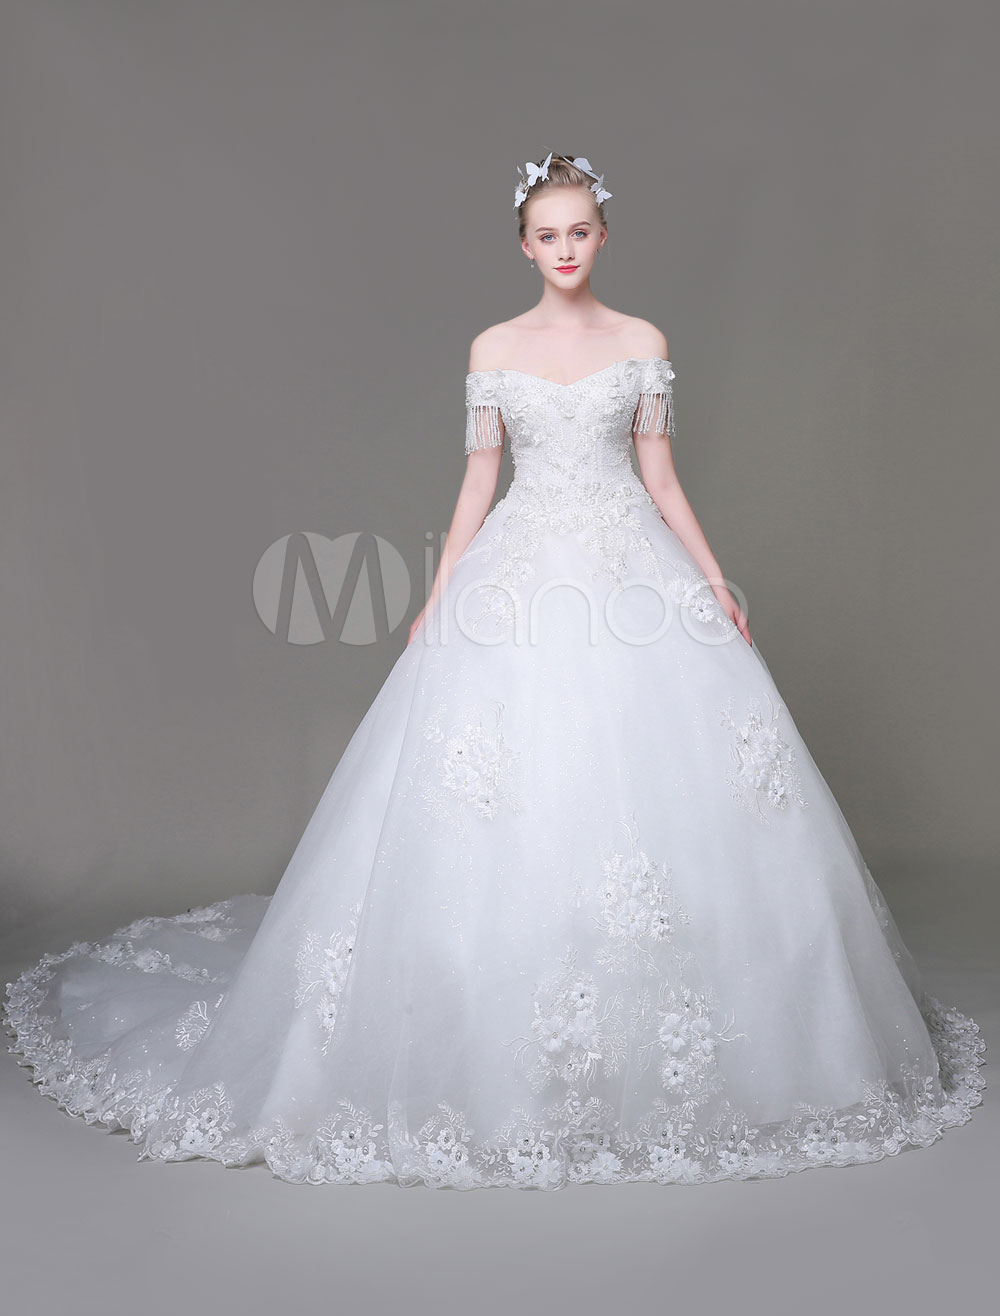 Luxury Wedding Dresses Ball Gown Off The Shoulder Princess Tassels Beaded Lace Applique White